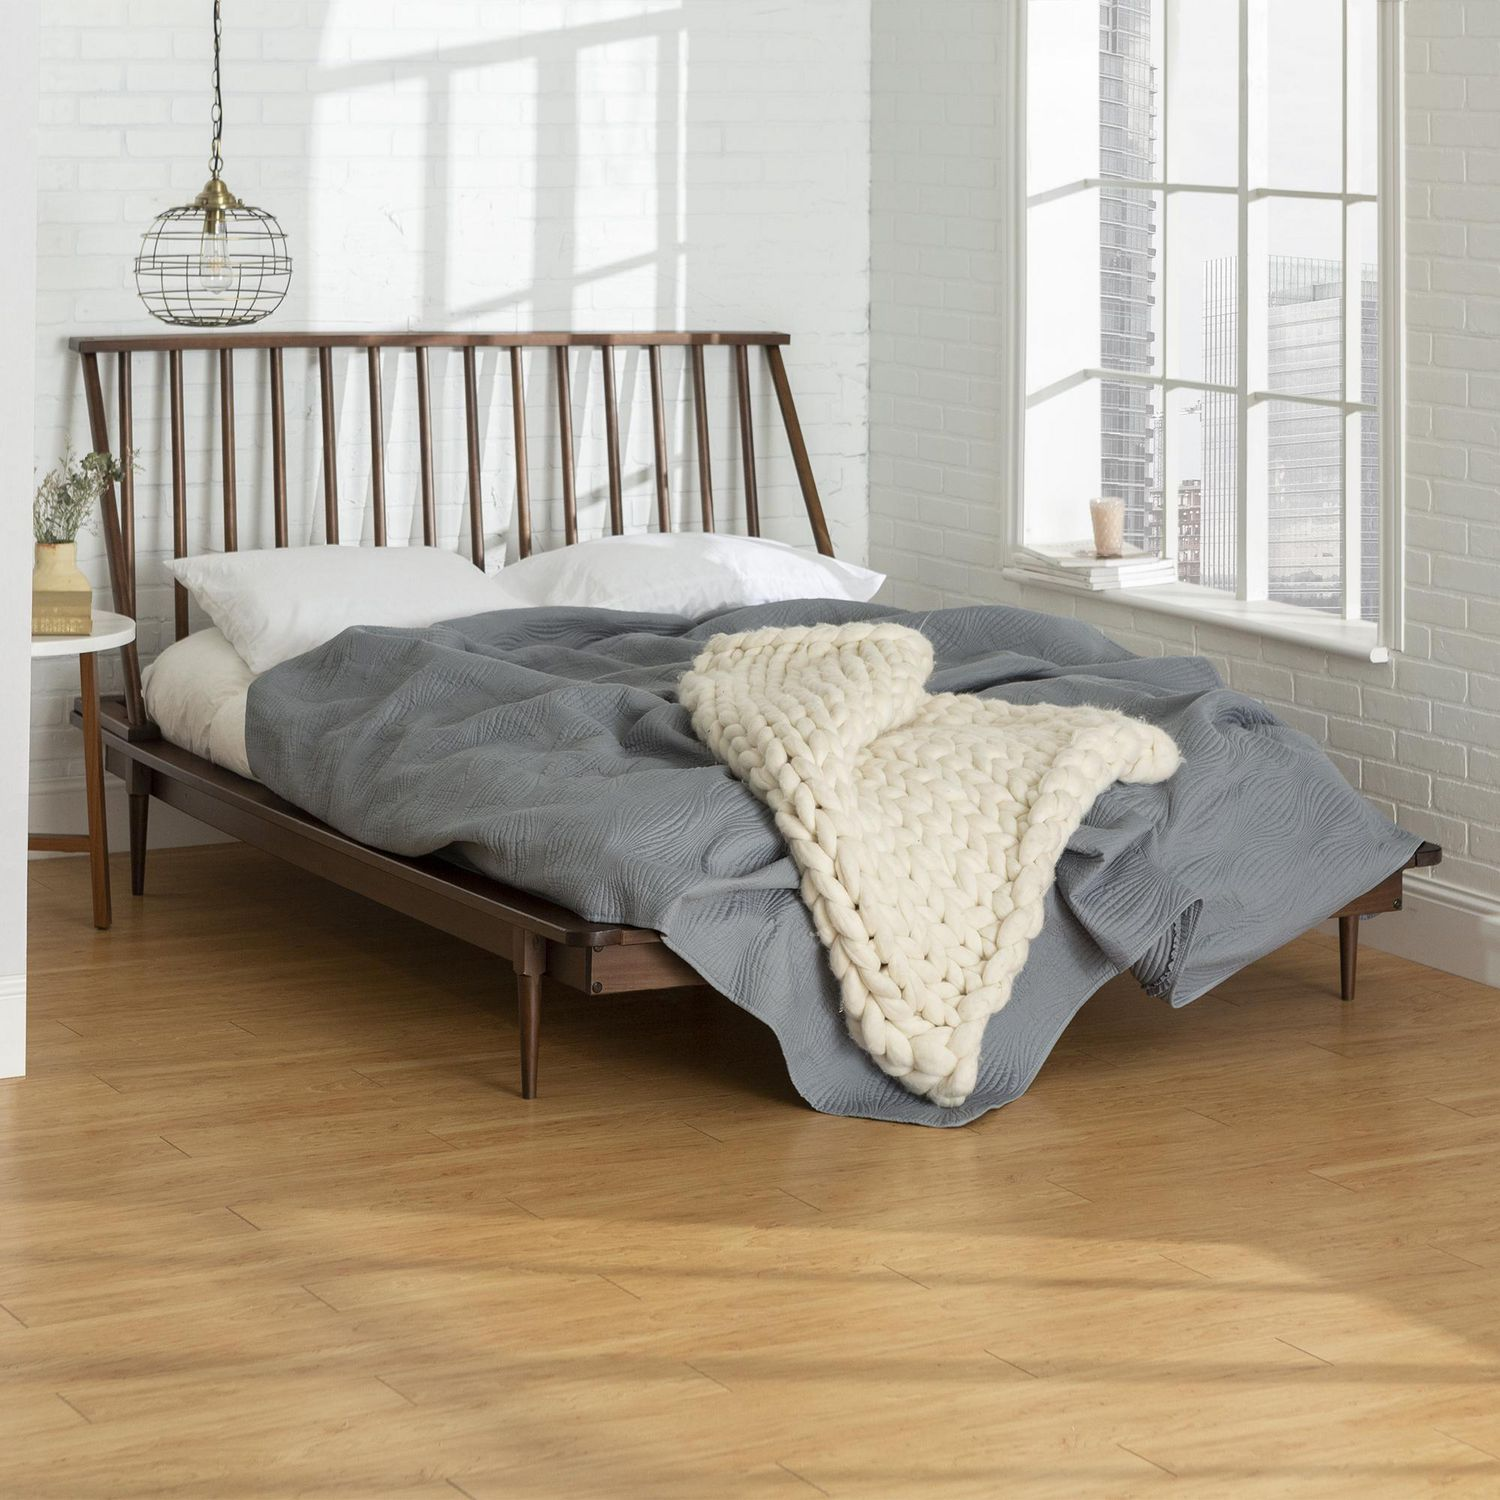 Manor Park Boho Mid Century Modern Wood Queen Spindle Bed Multiple Finishes Walmart Canada